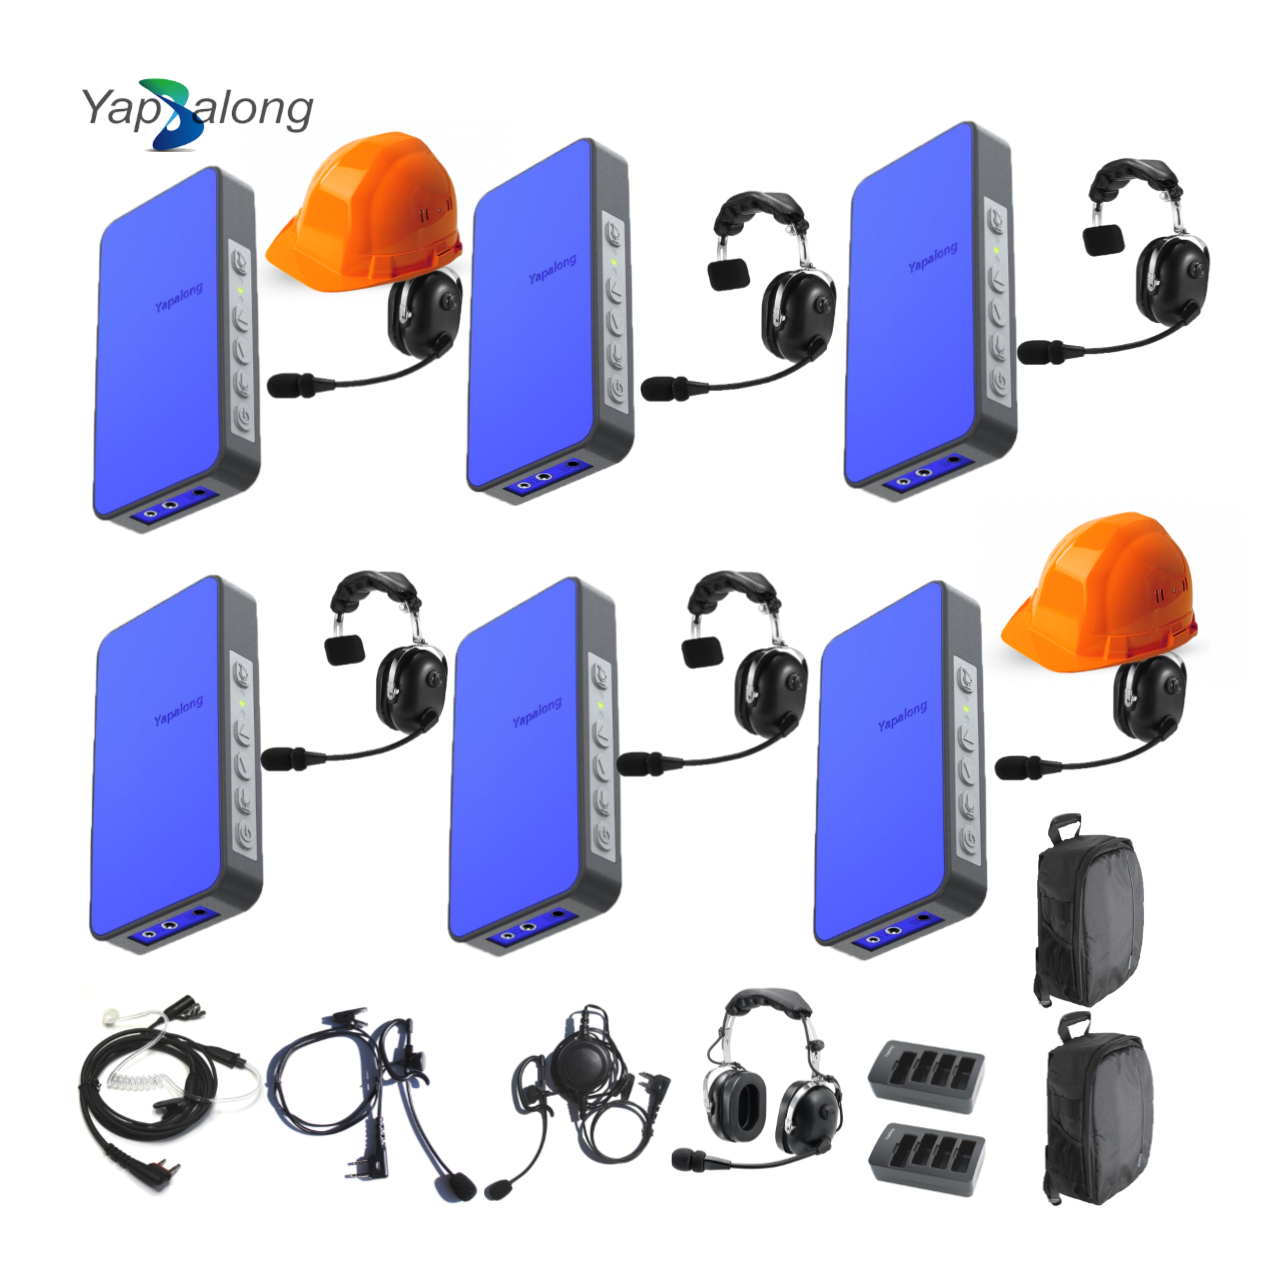 Yapalong 5000 (6-User) Industriale Complete Set Intercom Systems Intercom Systems